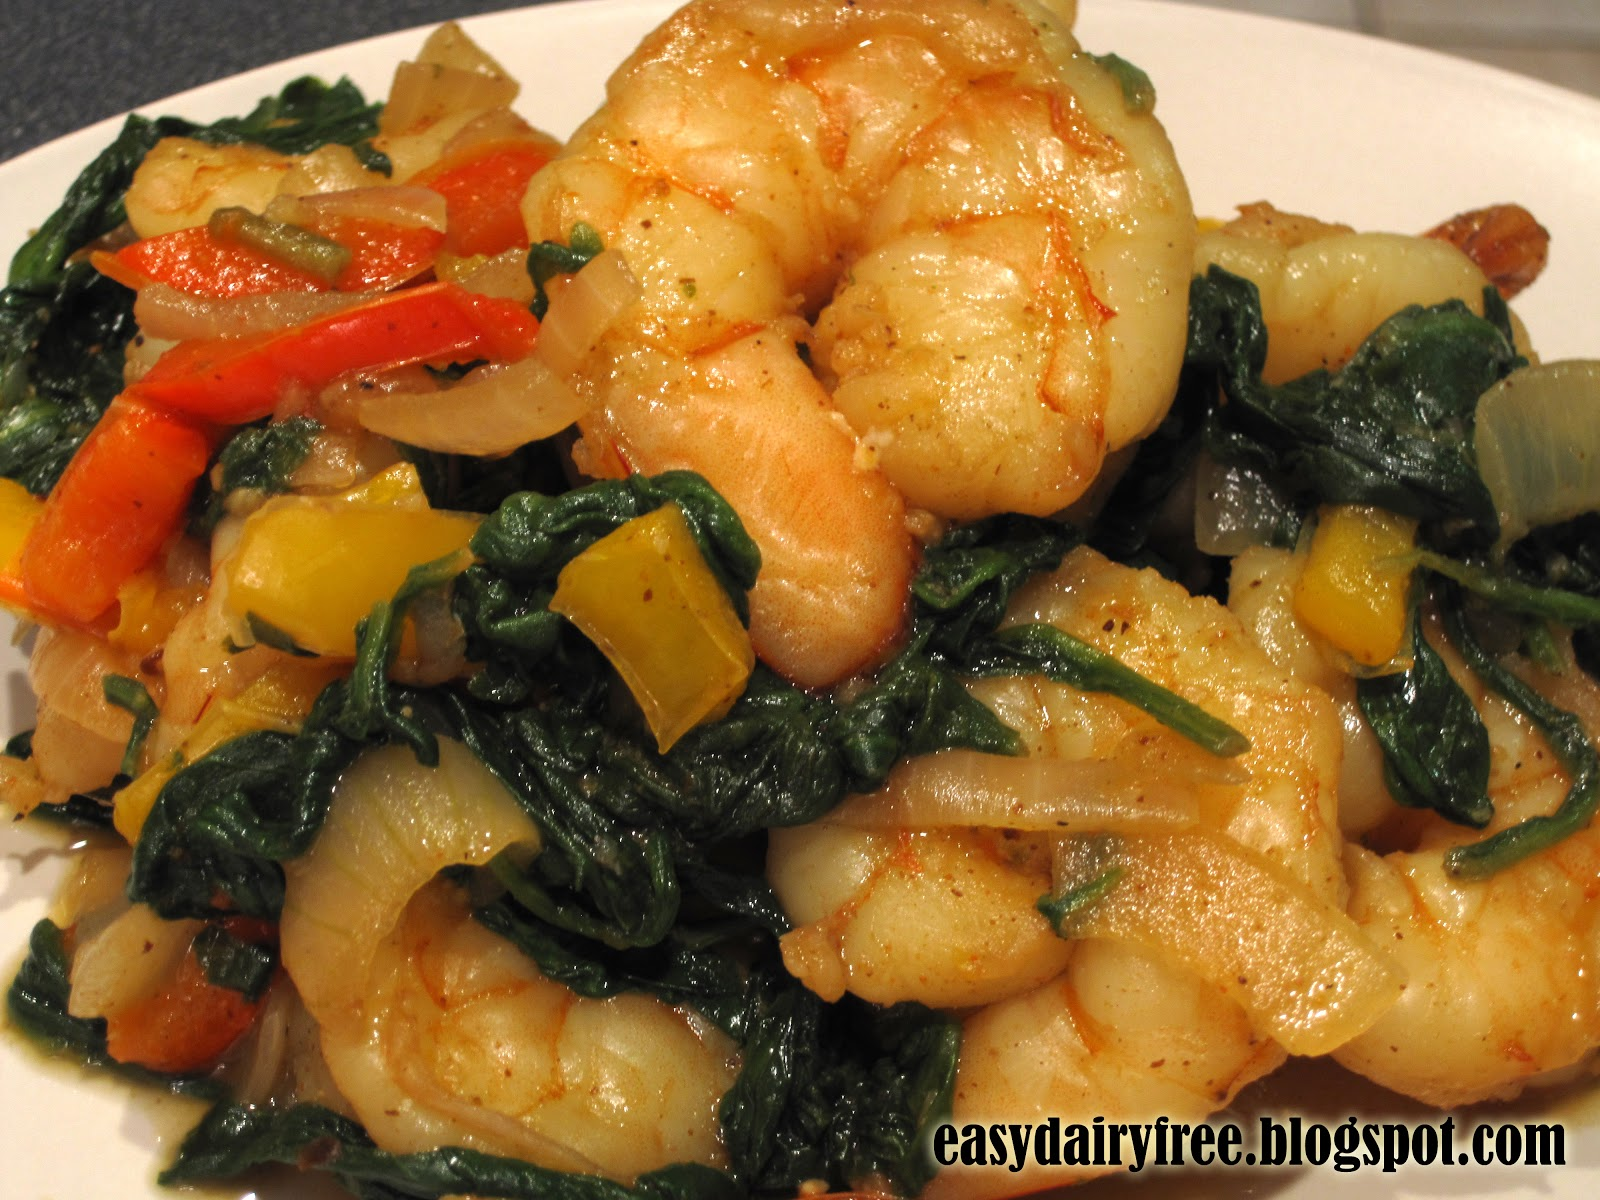 Easy Dairy Free: Sautéed Shrimp and Spinach